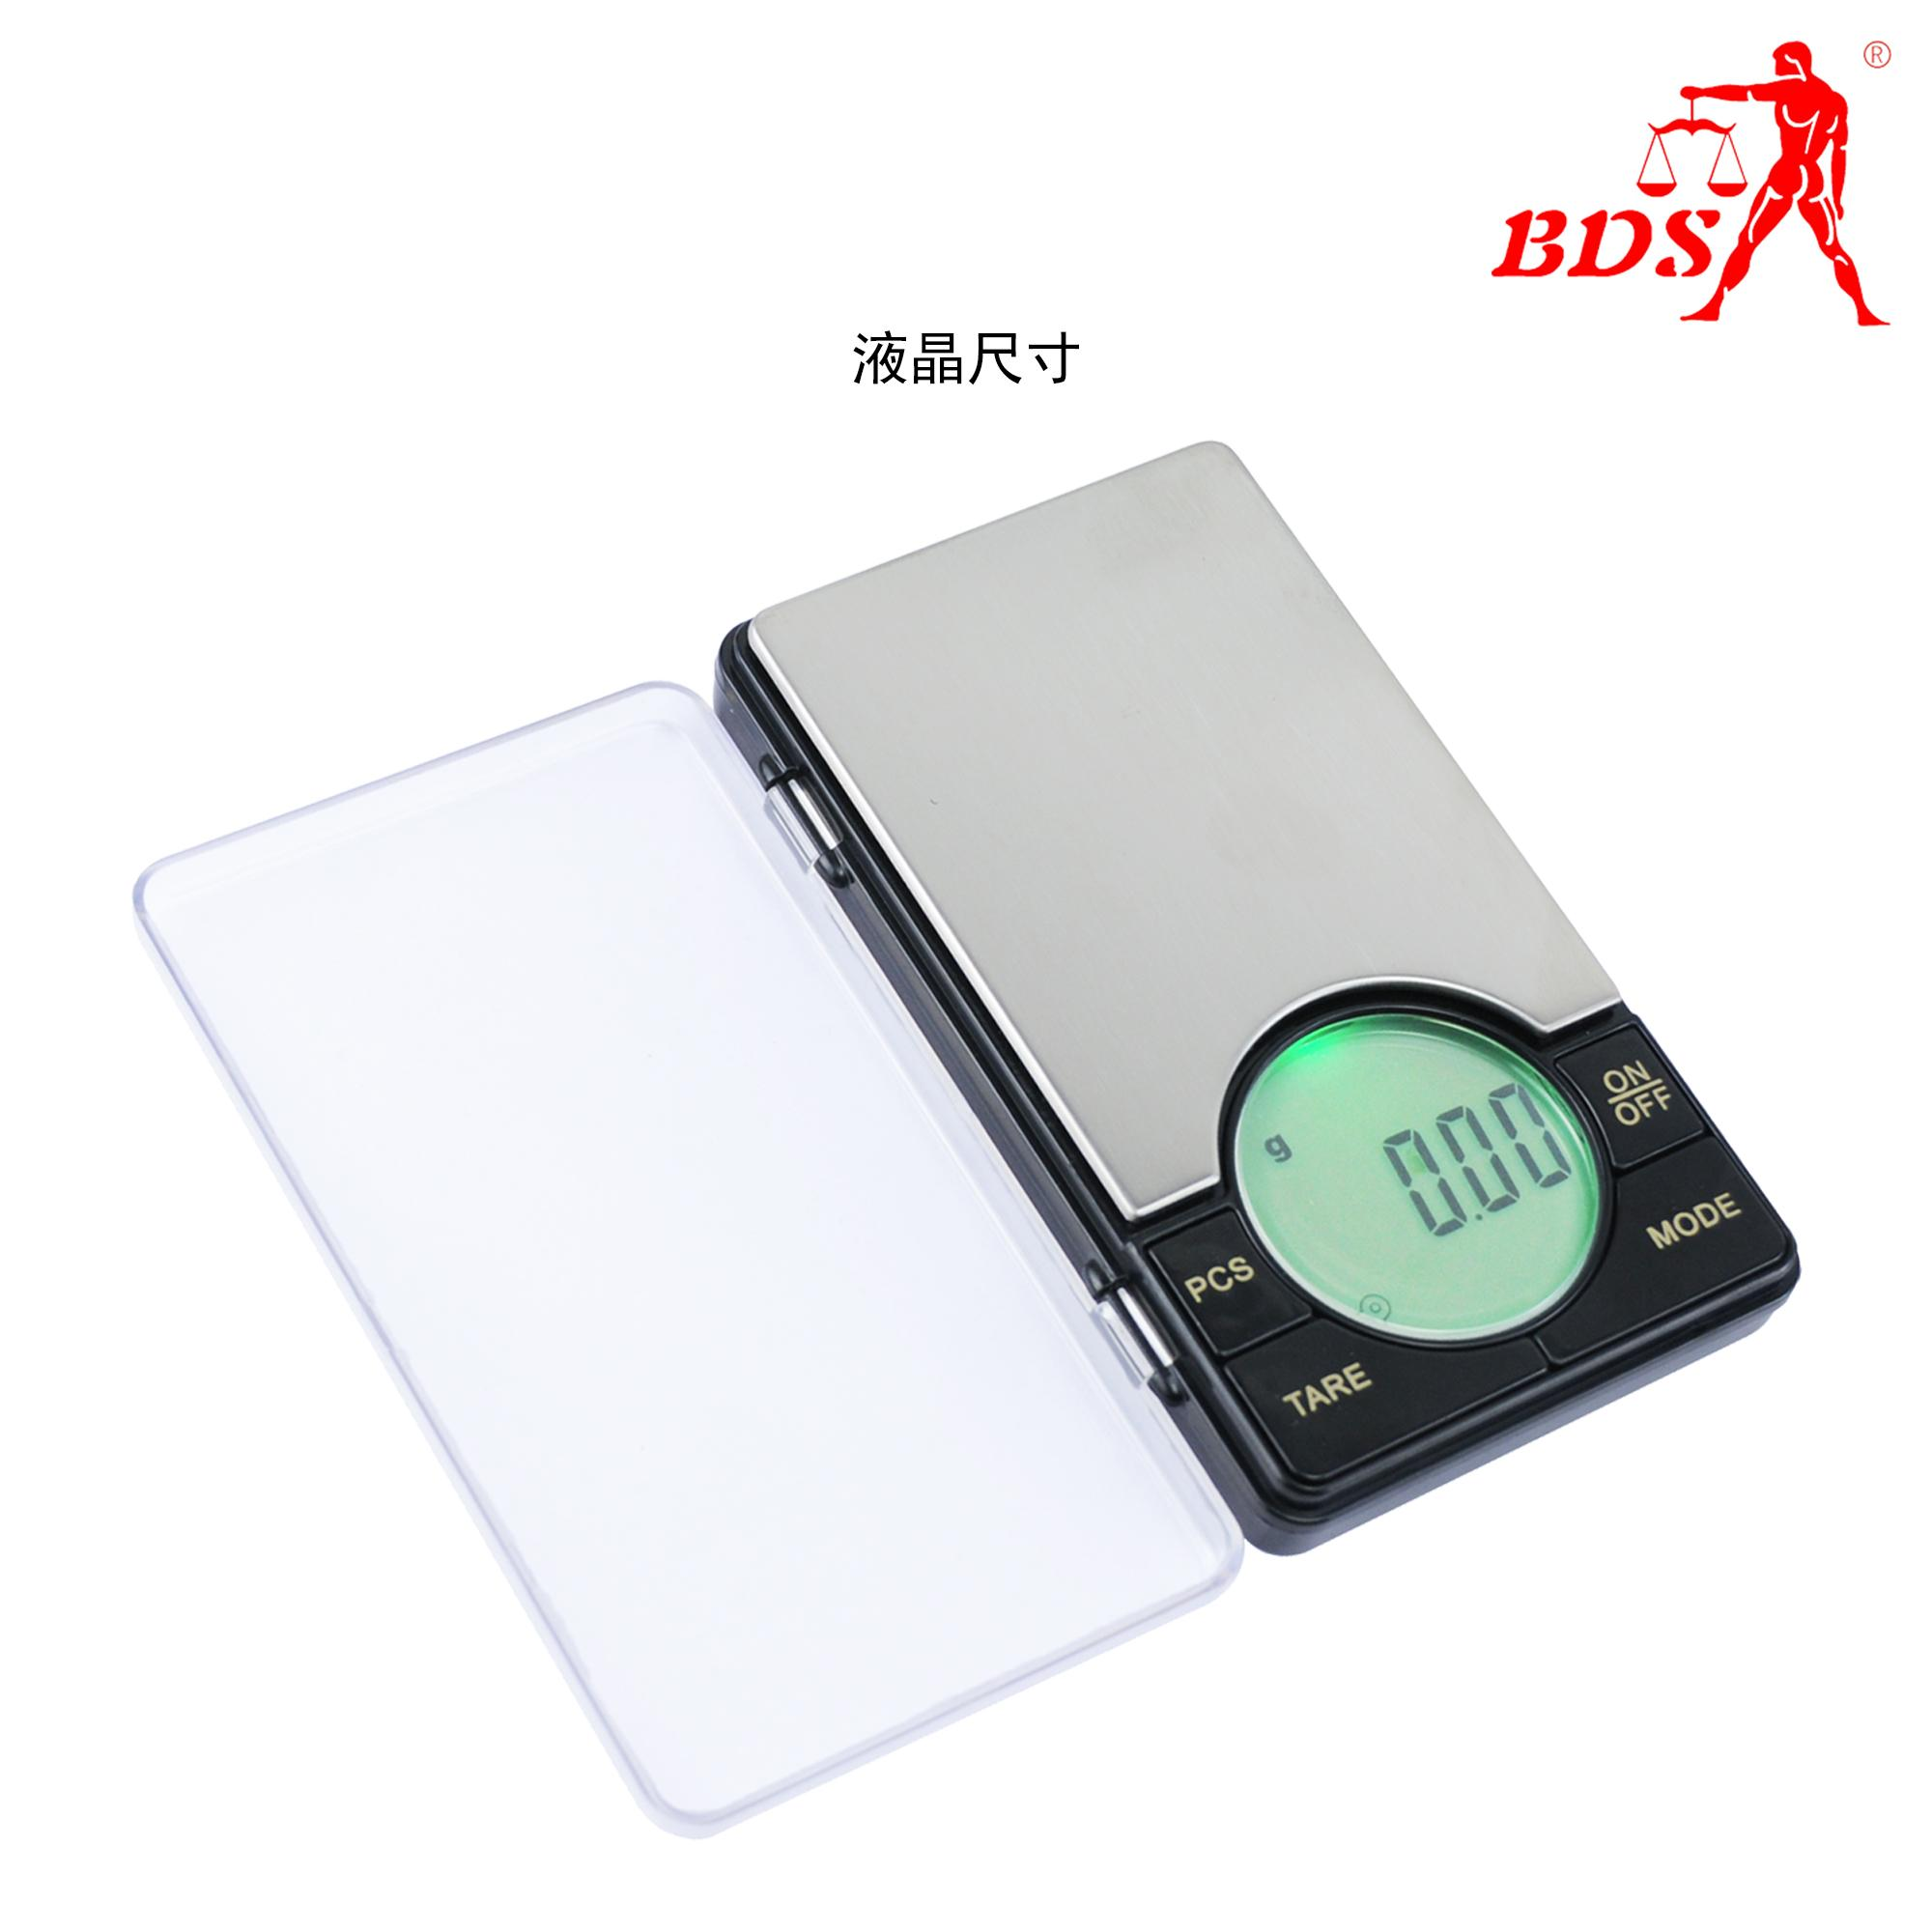 BDSES with good stability and acuracy pocket scale jewelry scale 0.01g 3